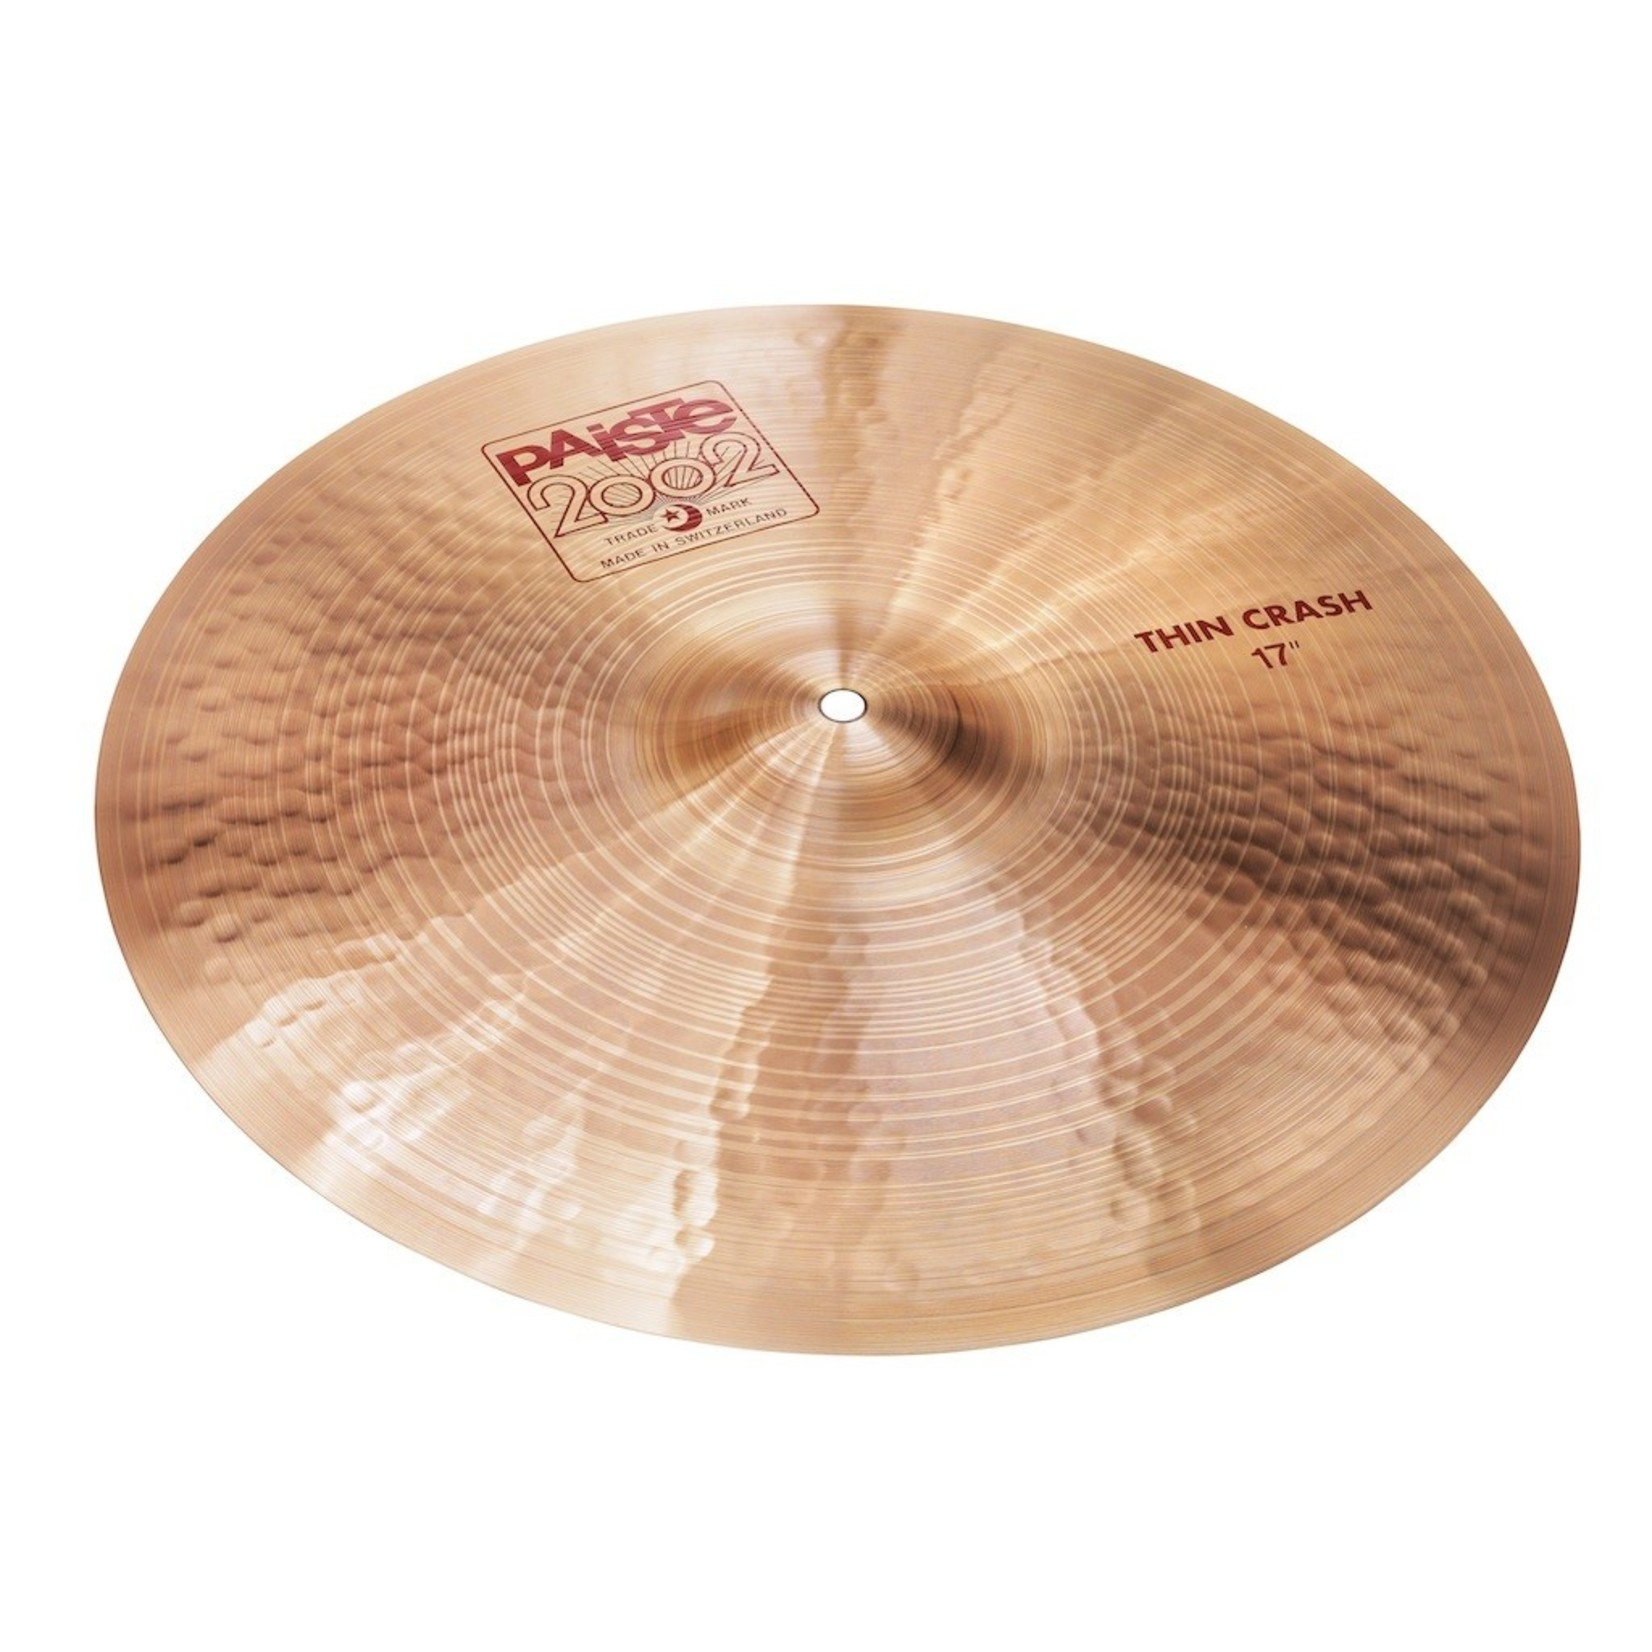 "Paiste PAISTE 17"" 2002 THIN CRASH"